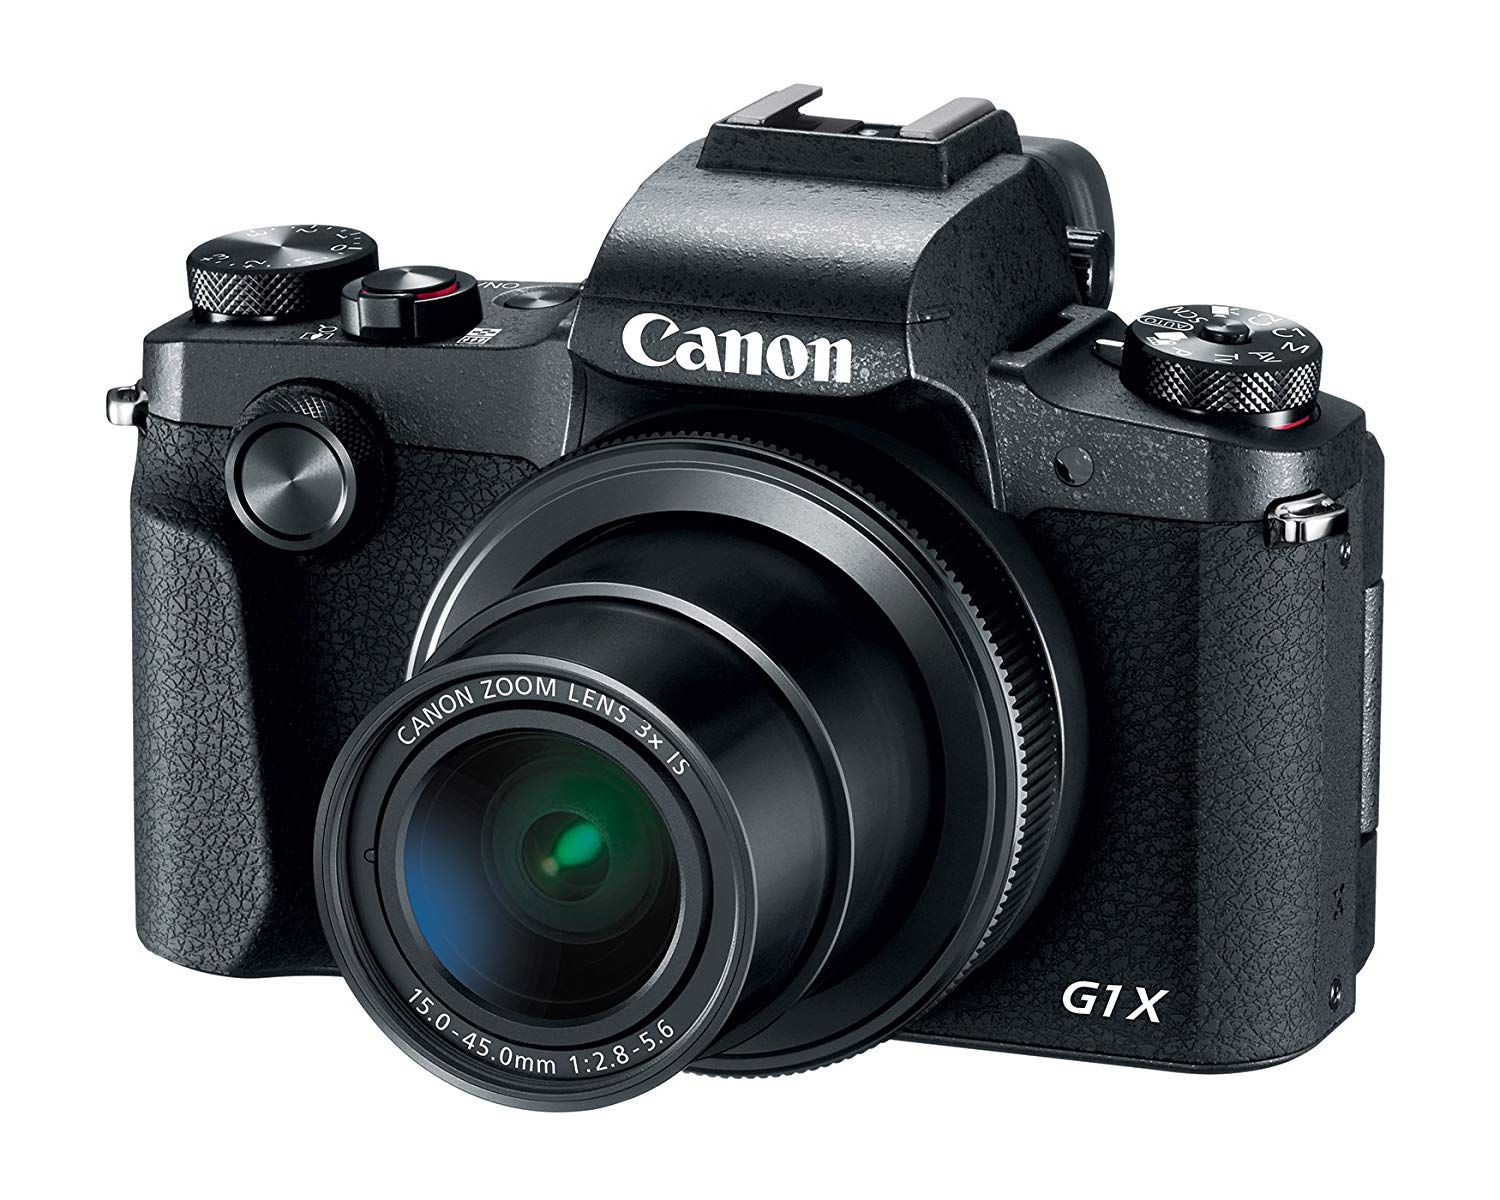 Canon PowerShot G1 X Mark III Camera Digital Camera get best offers deals free and coupons online at buythevalue.in